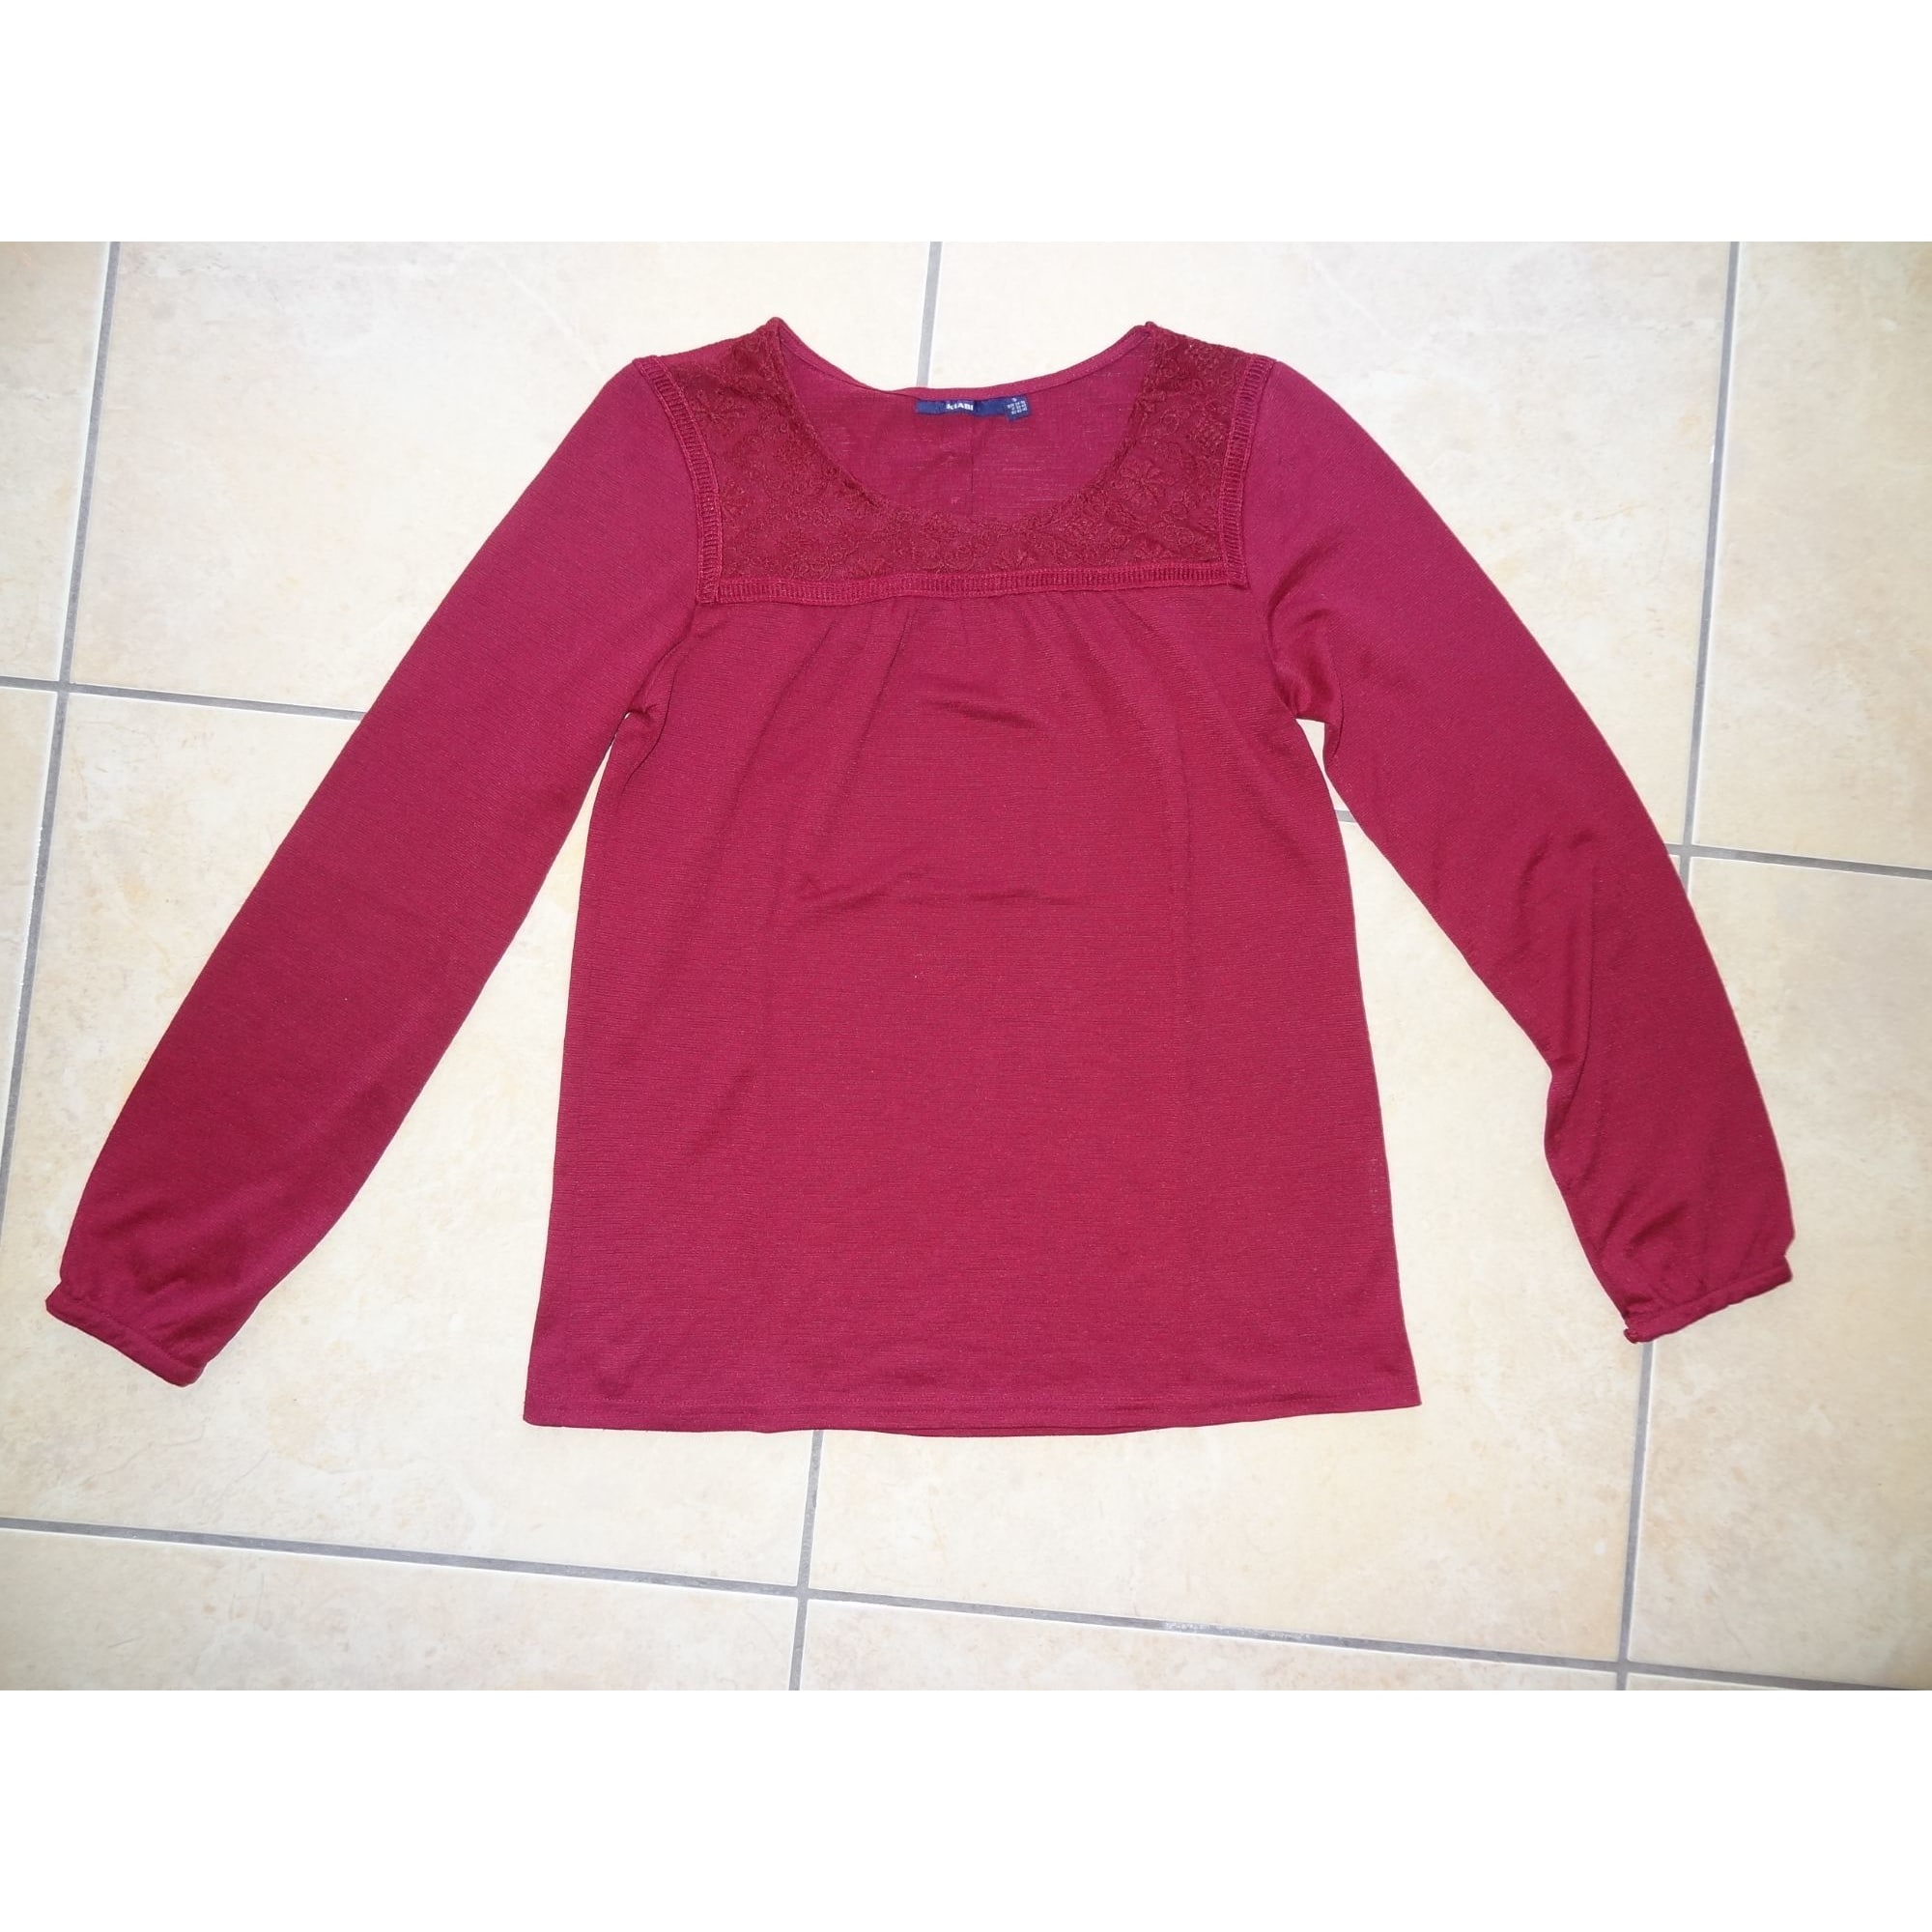 Top, tee-shirt KIABI Rouge, bordeaux